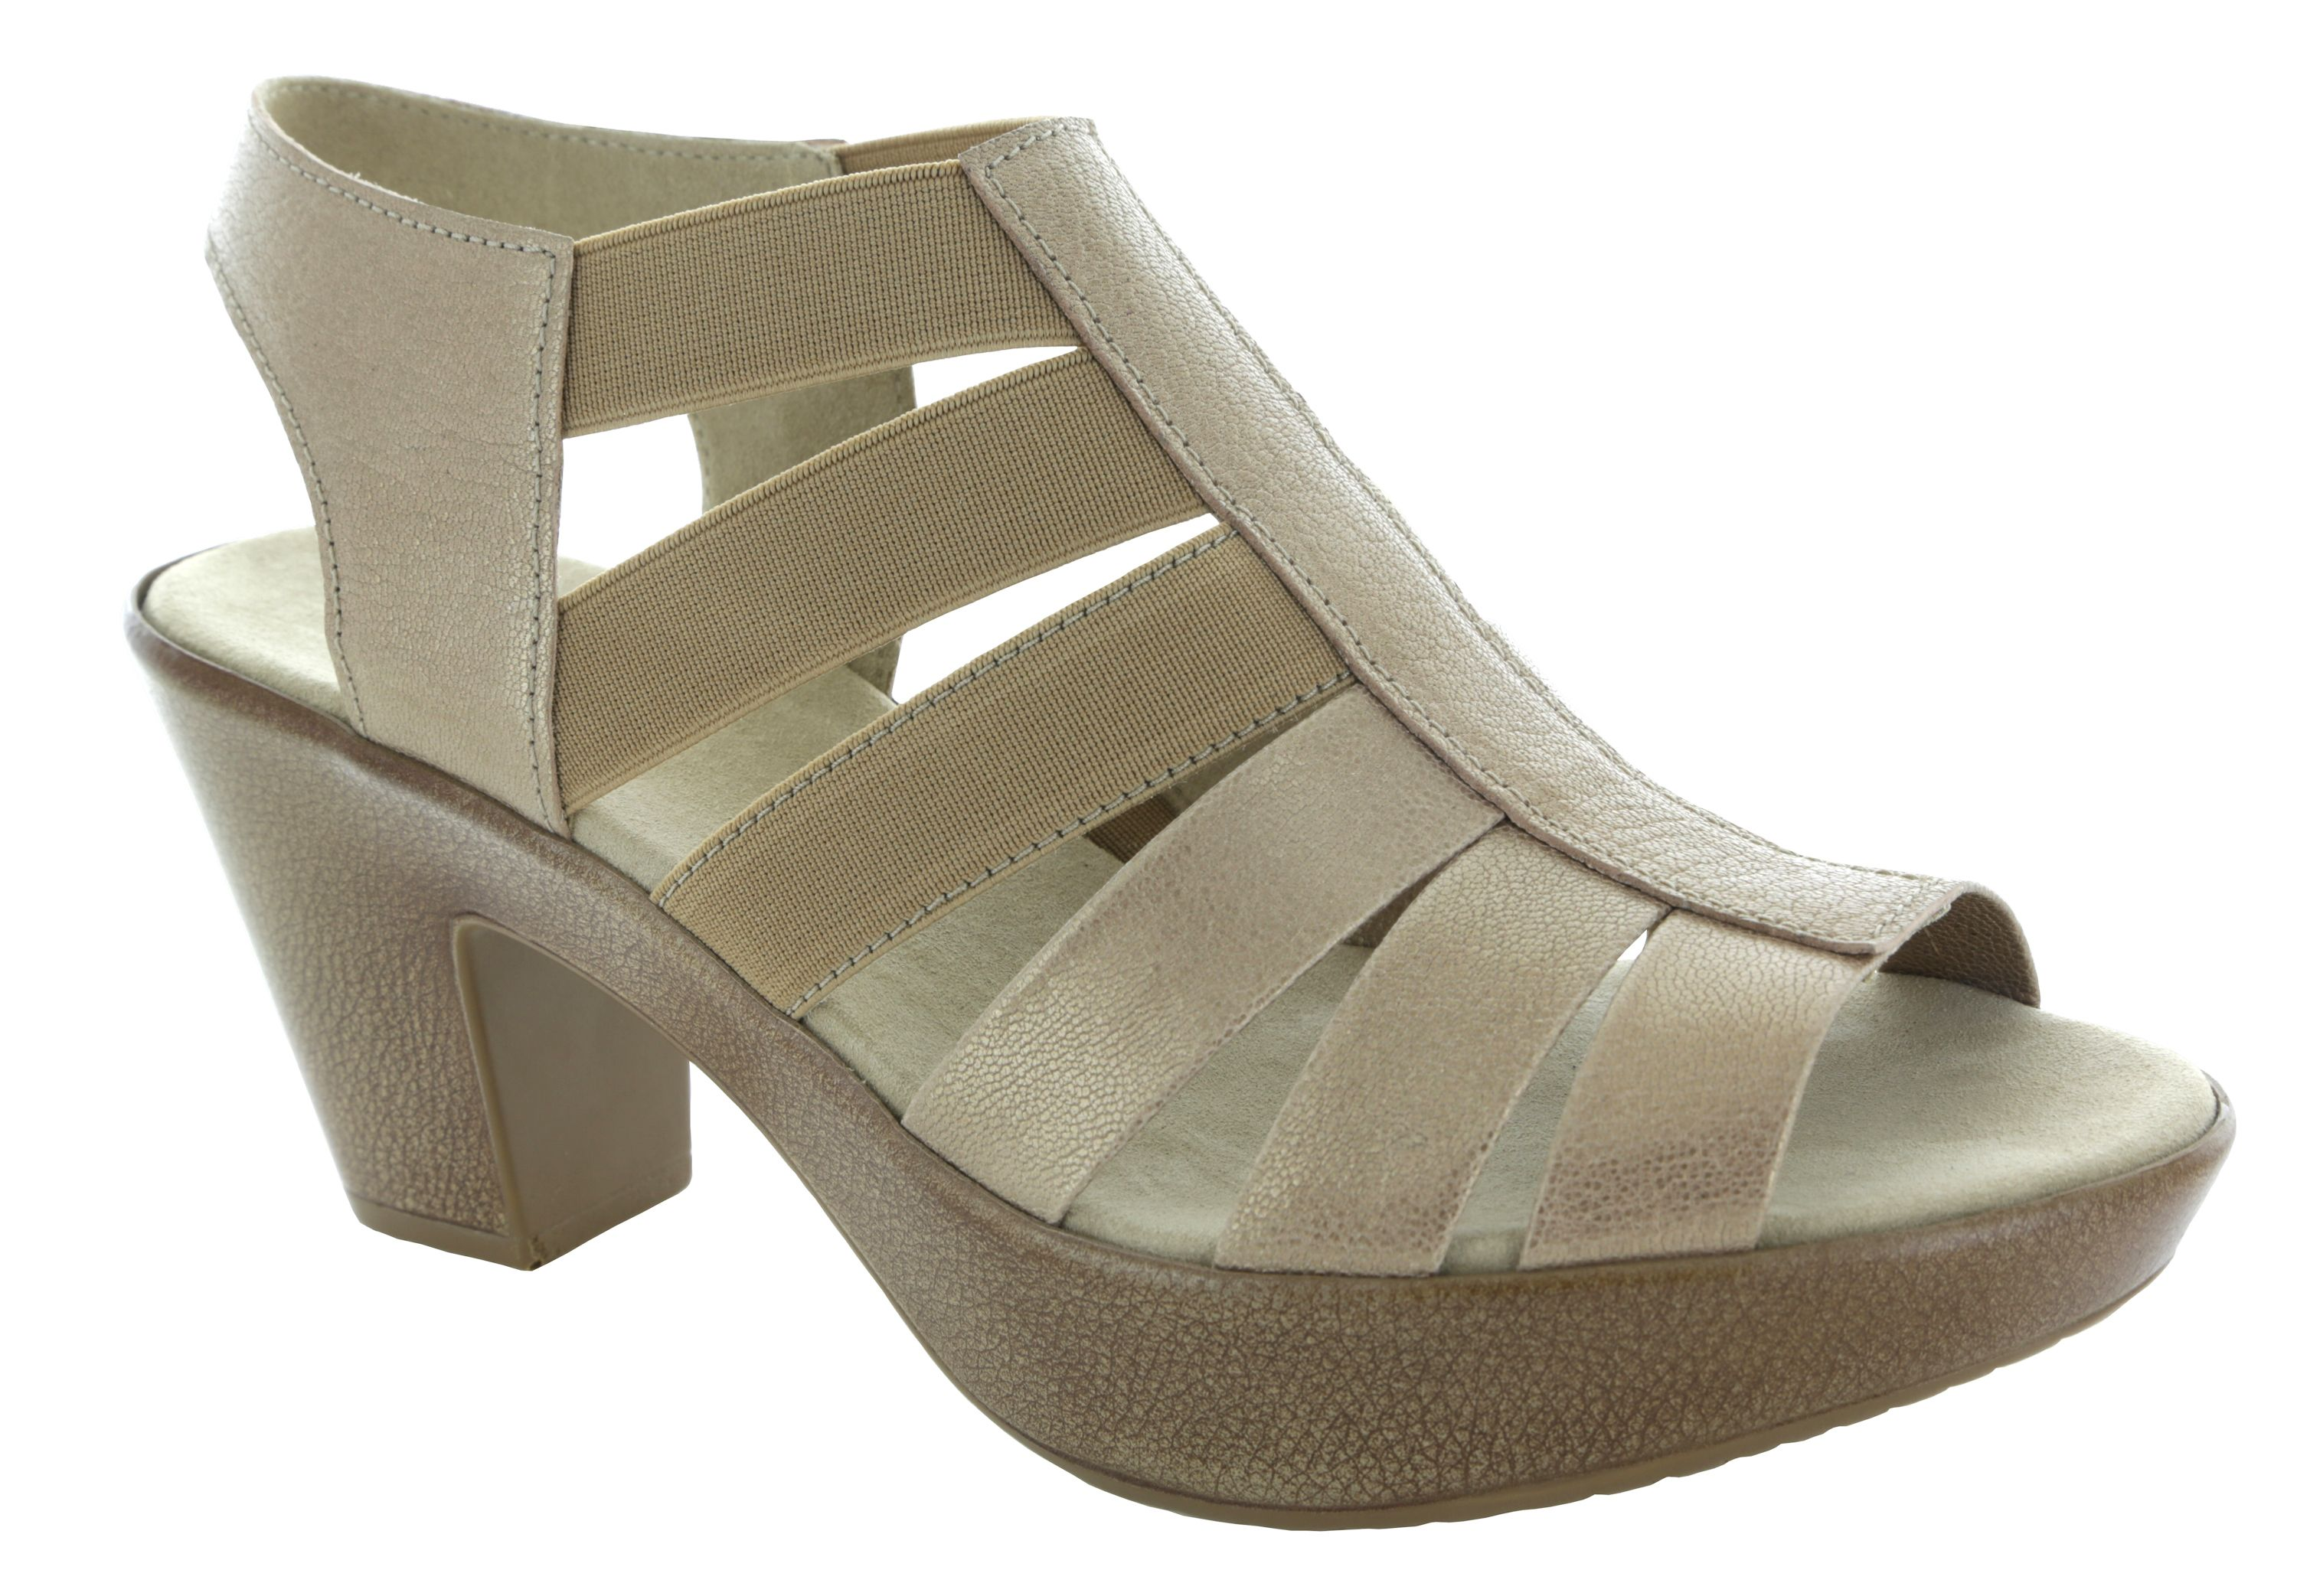 e382a949ed0 Munro Cookie in metallic gold with leather and elastic straps. M386051